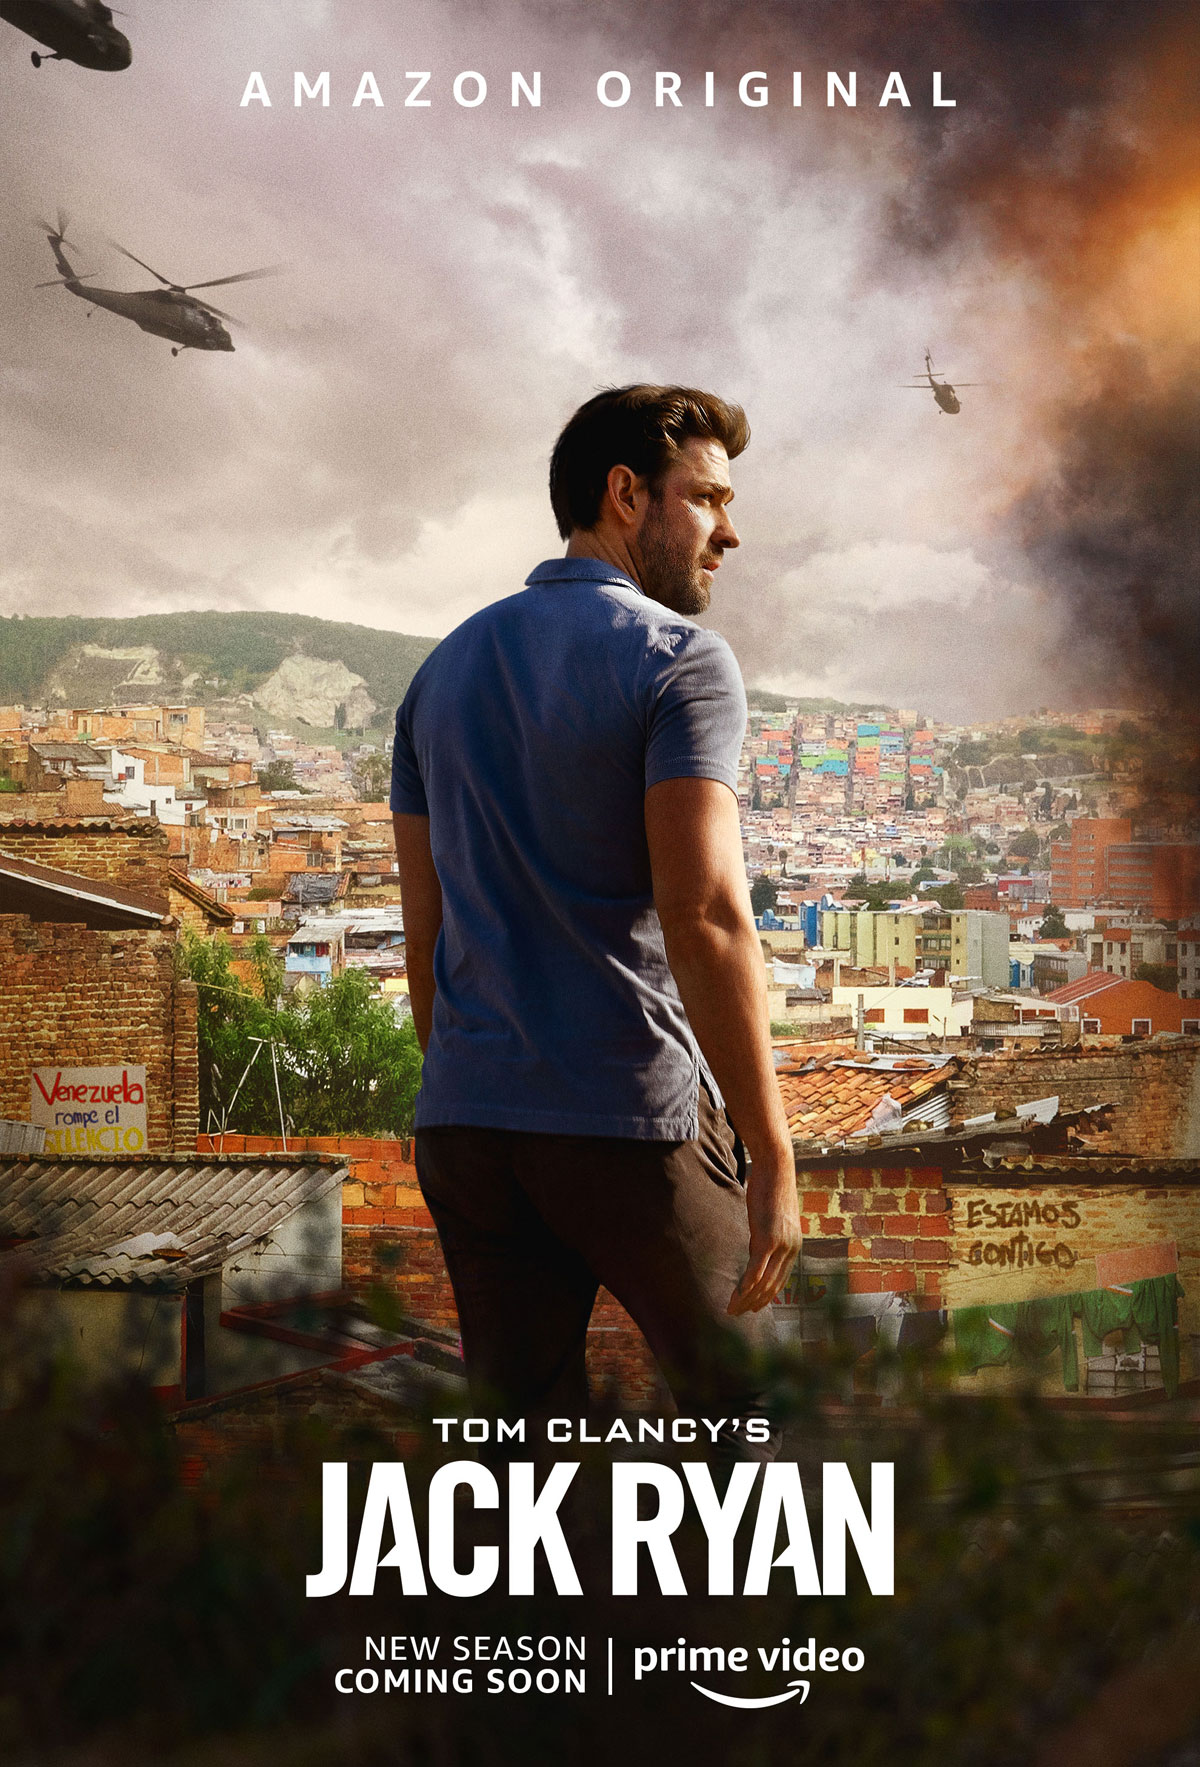 Tom Clancy's Jack Ryan Season 2 Poster